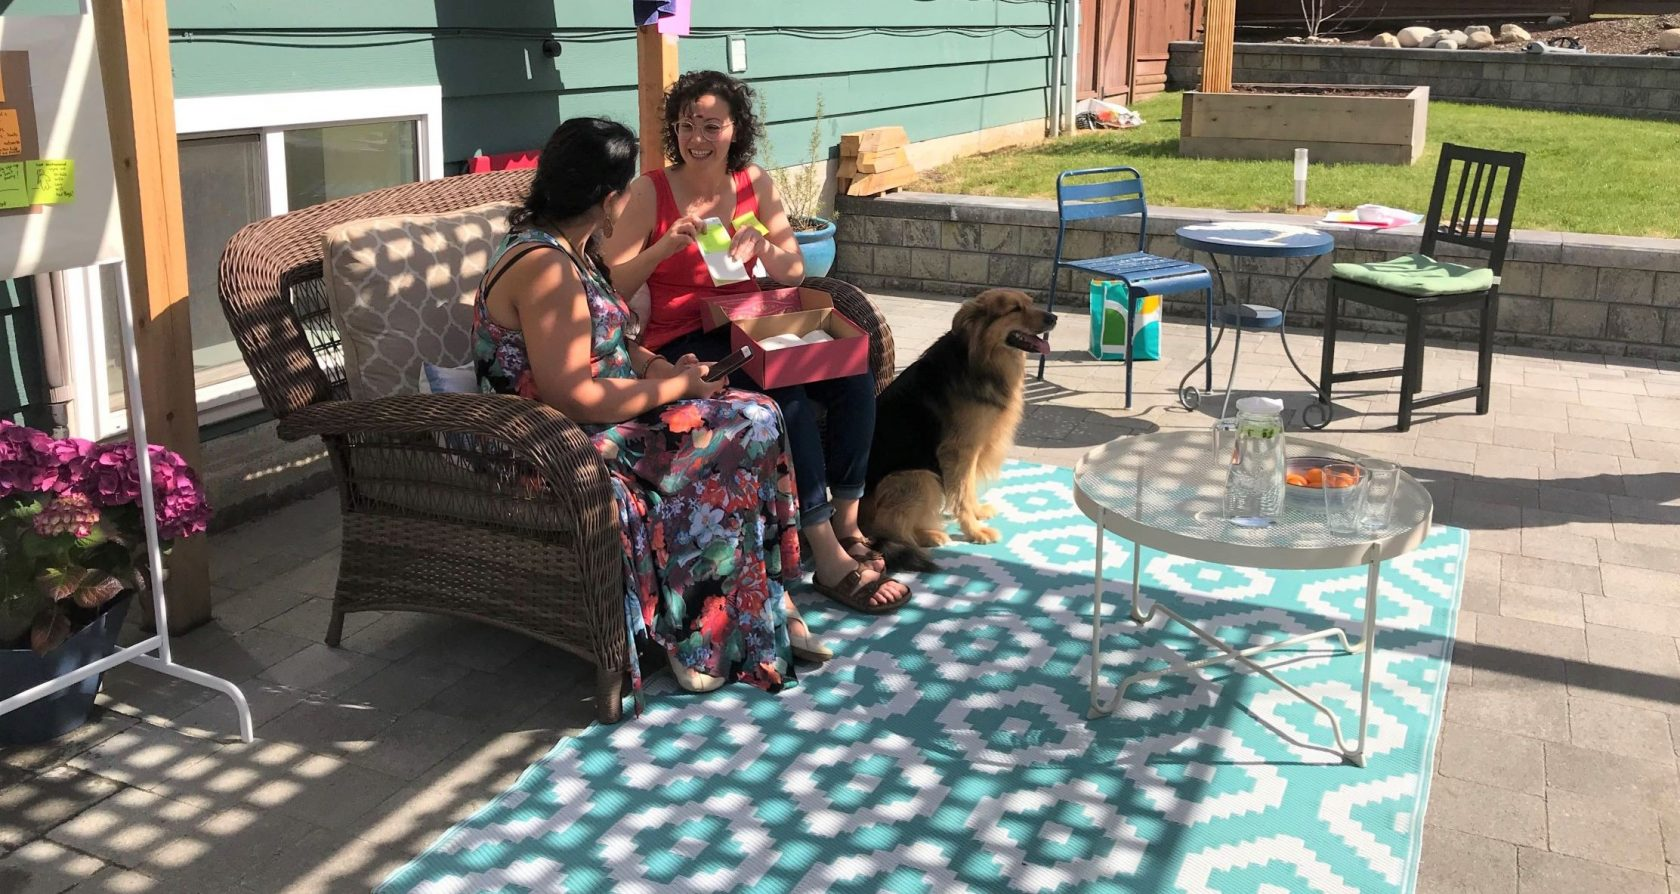 Shokhan and Alysha sit on patio furniture in dappled light below a patio arbour, accompanied by a large dog.